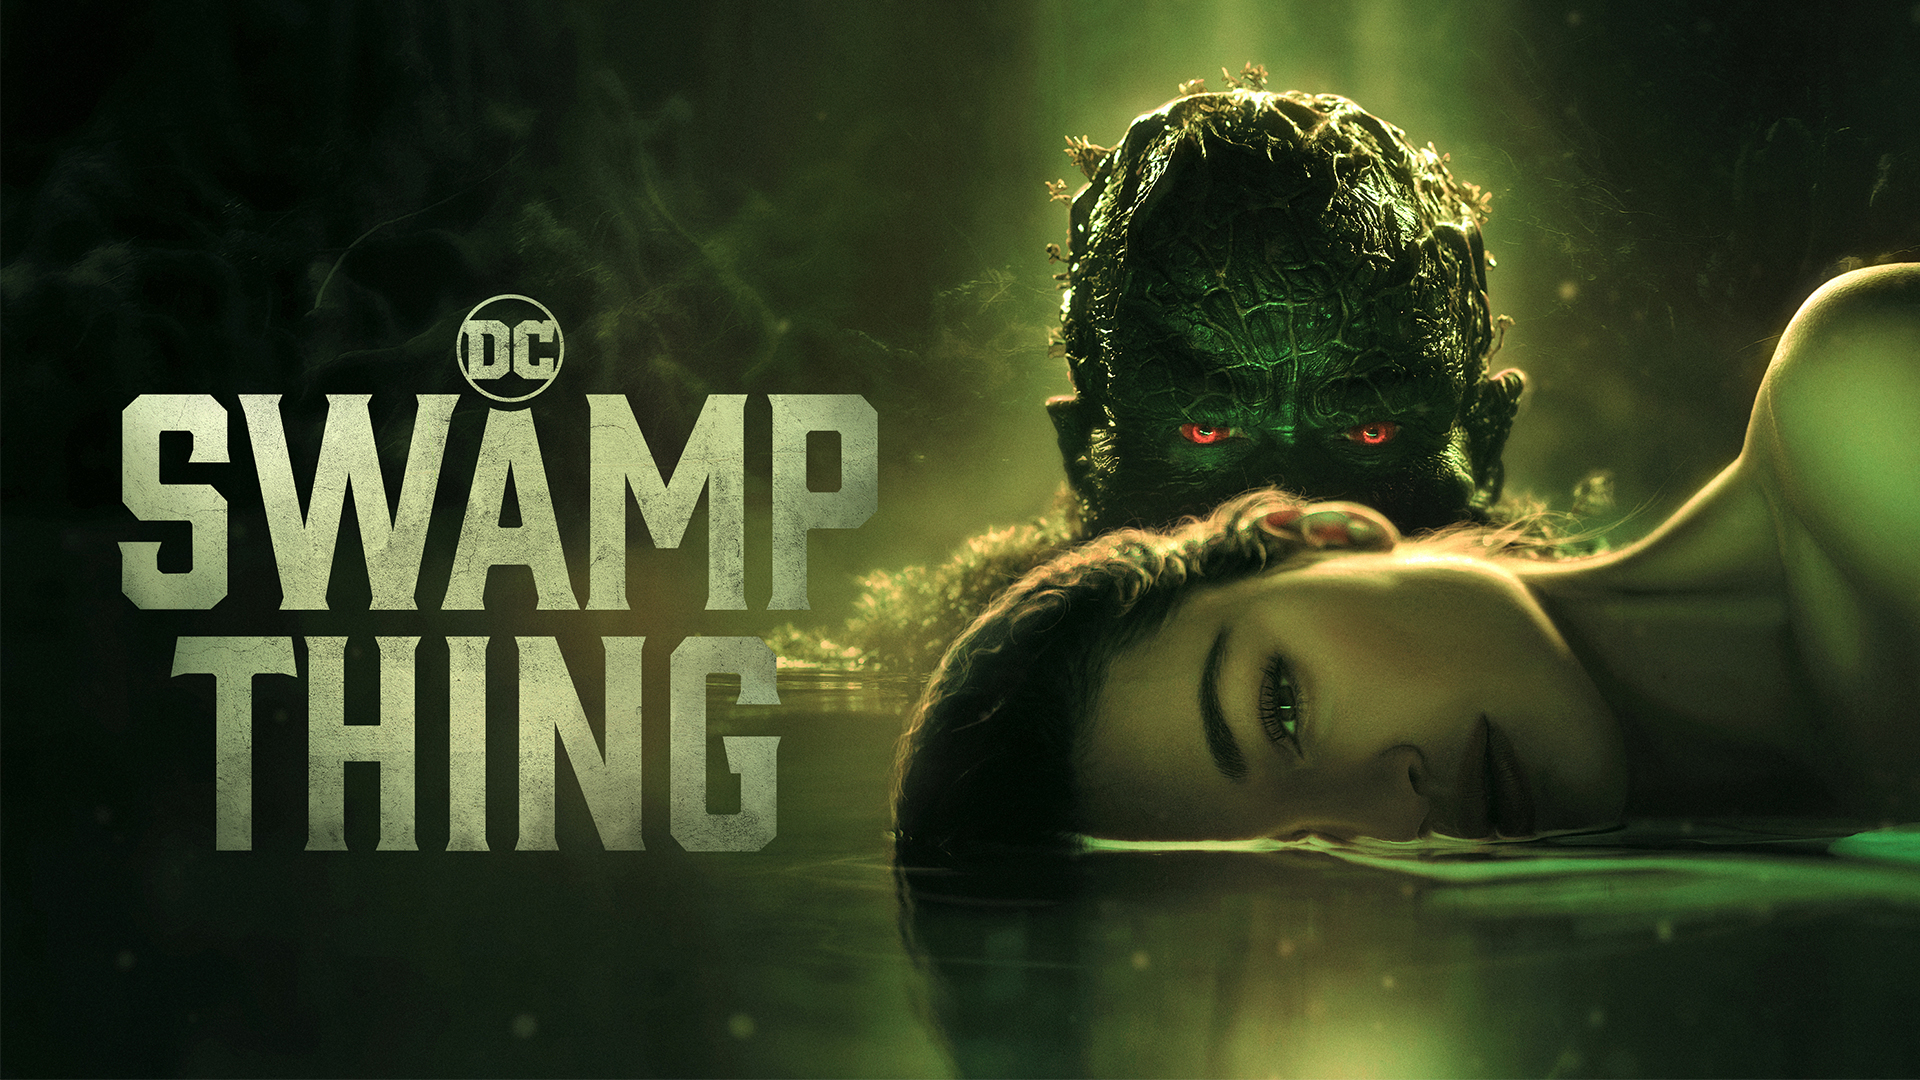 2560x1080 Swamp Thing Season 2 2560x1080 Resolution Wallpaper Hd Tv Series 4k Wallpapers Images Photos And Background